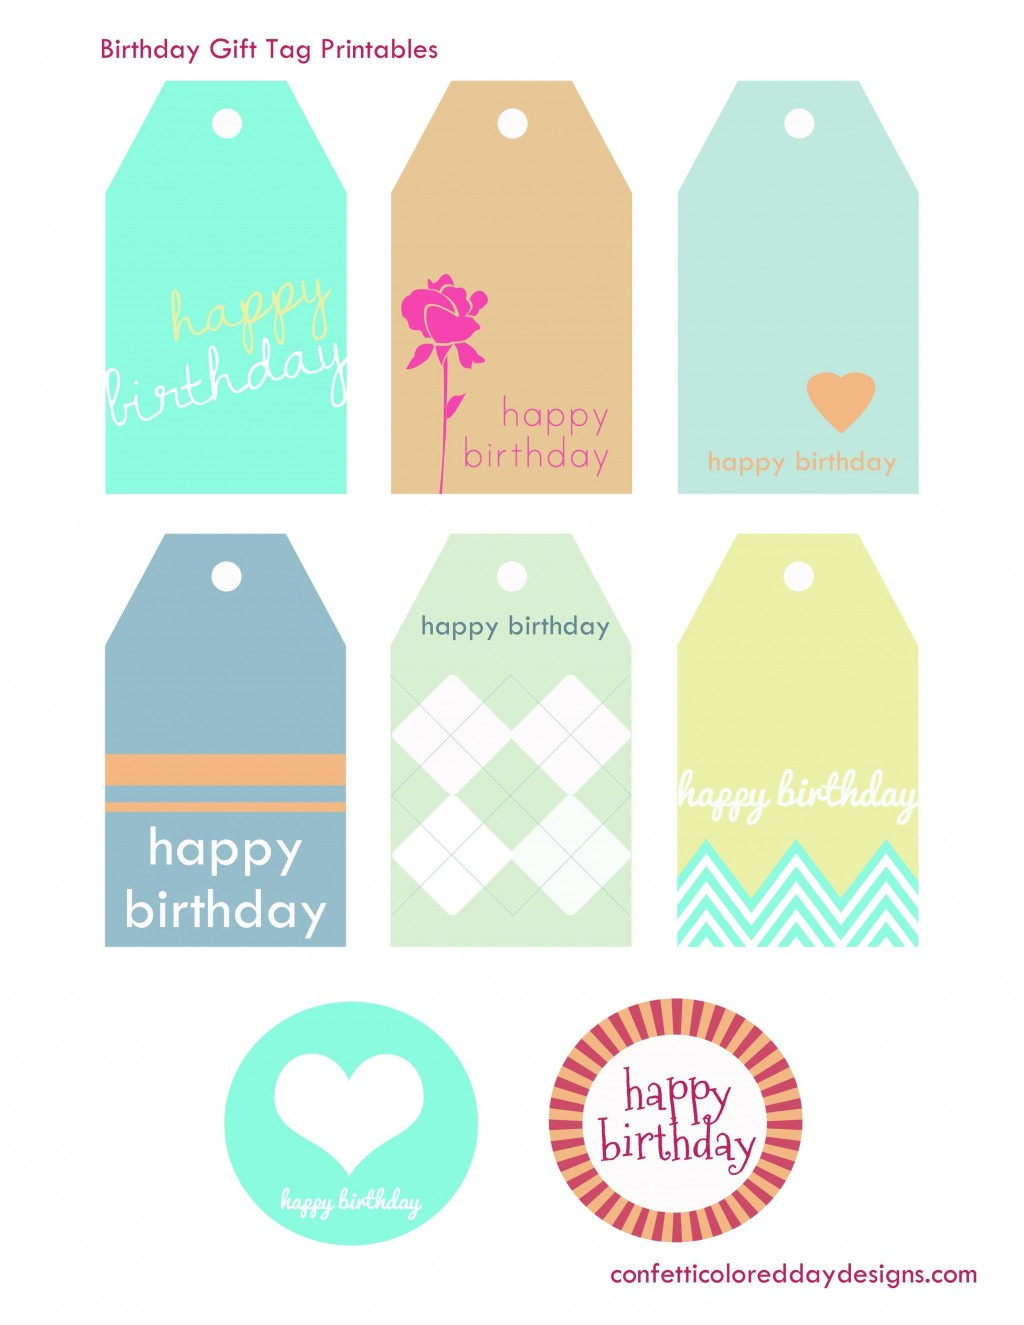 005 Fascinating Free Printable Thank You Gift Tag Template Photo  TemplatesLarge